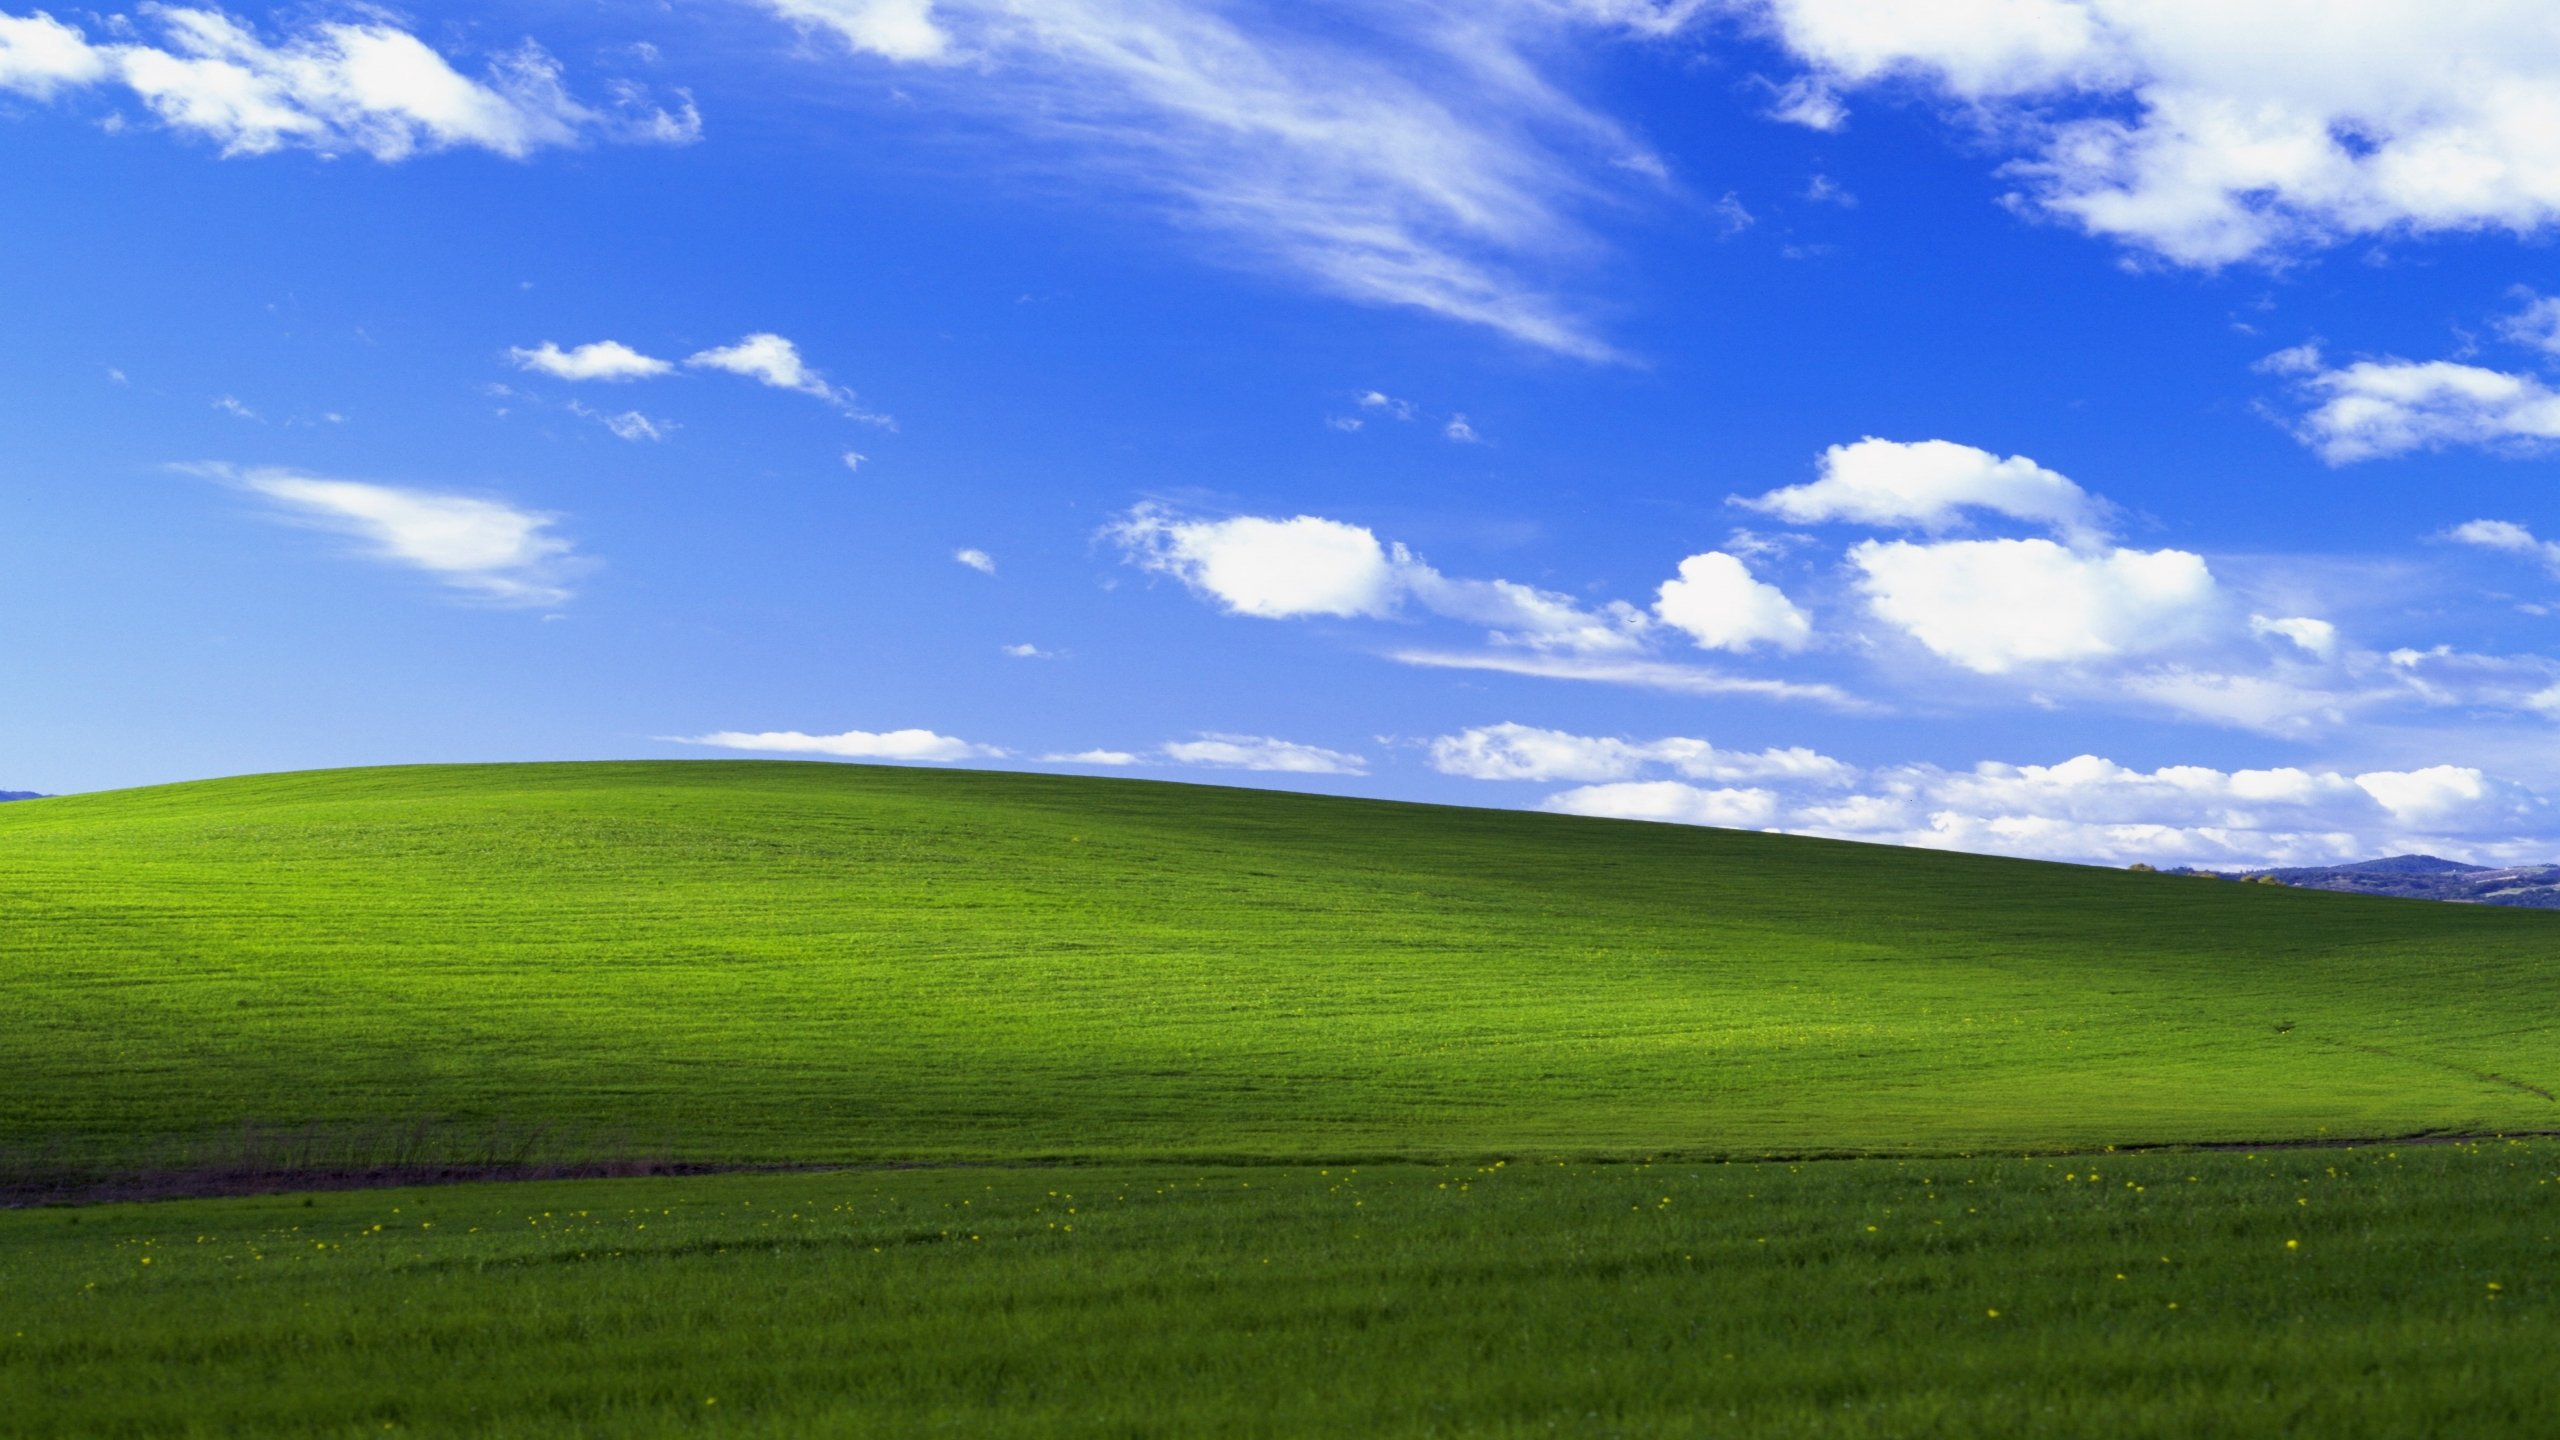 Windows Desktop Wallpaper Location